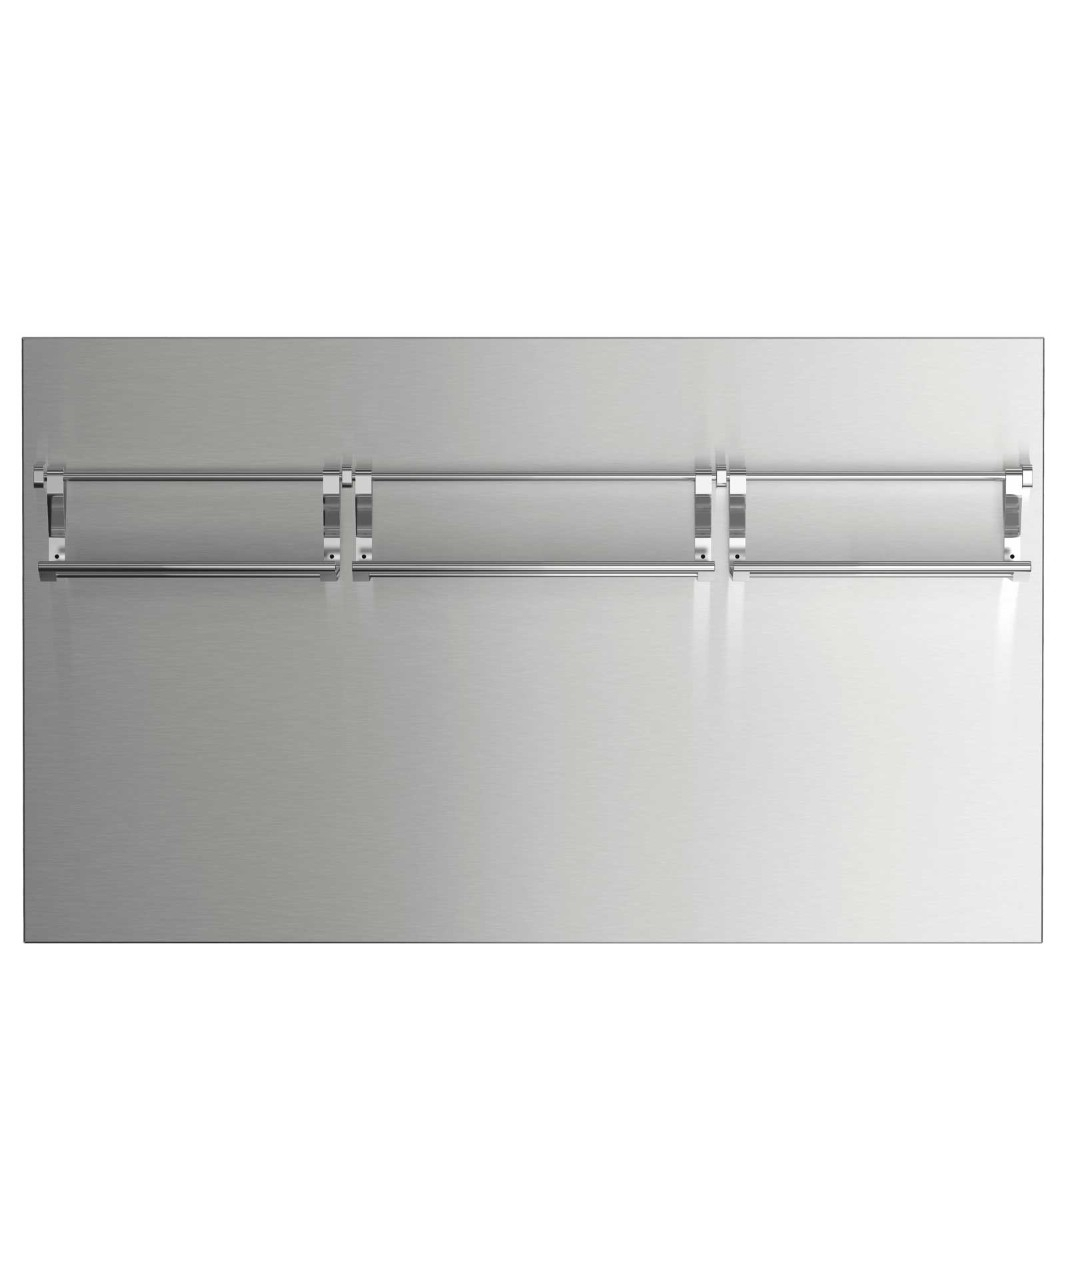 "Fisher and Paykel 48"" RANGE HIGH BACKGUARD"